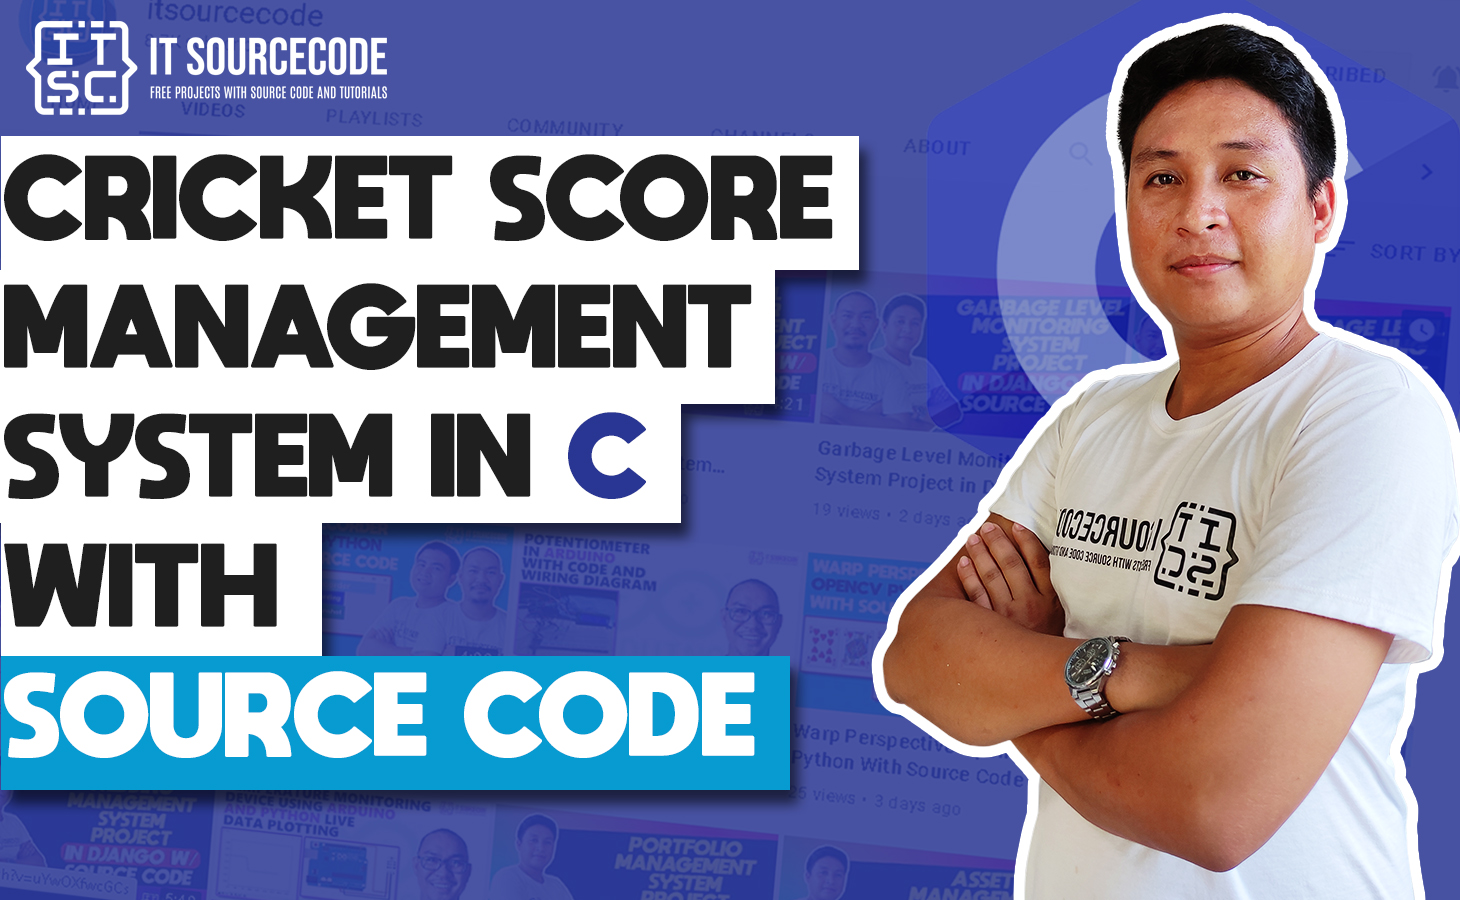 Cricket Score Management System in C with Source Code